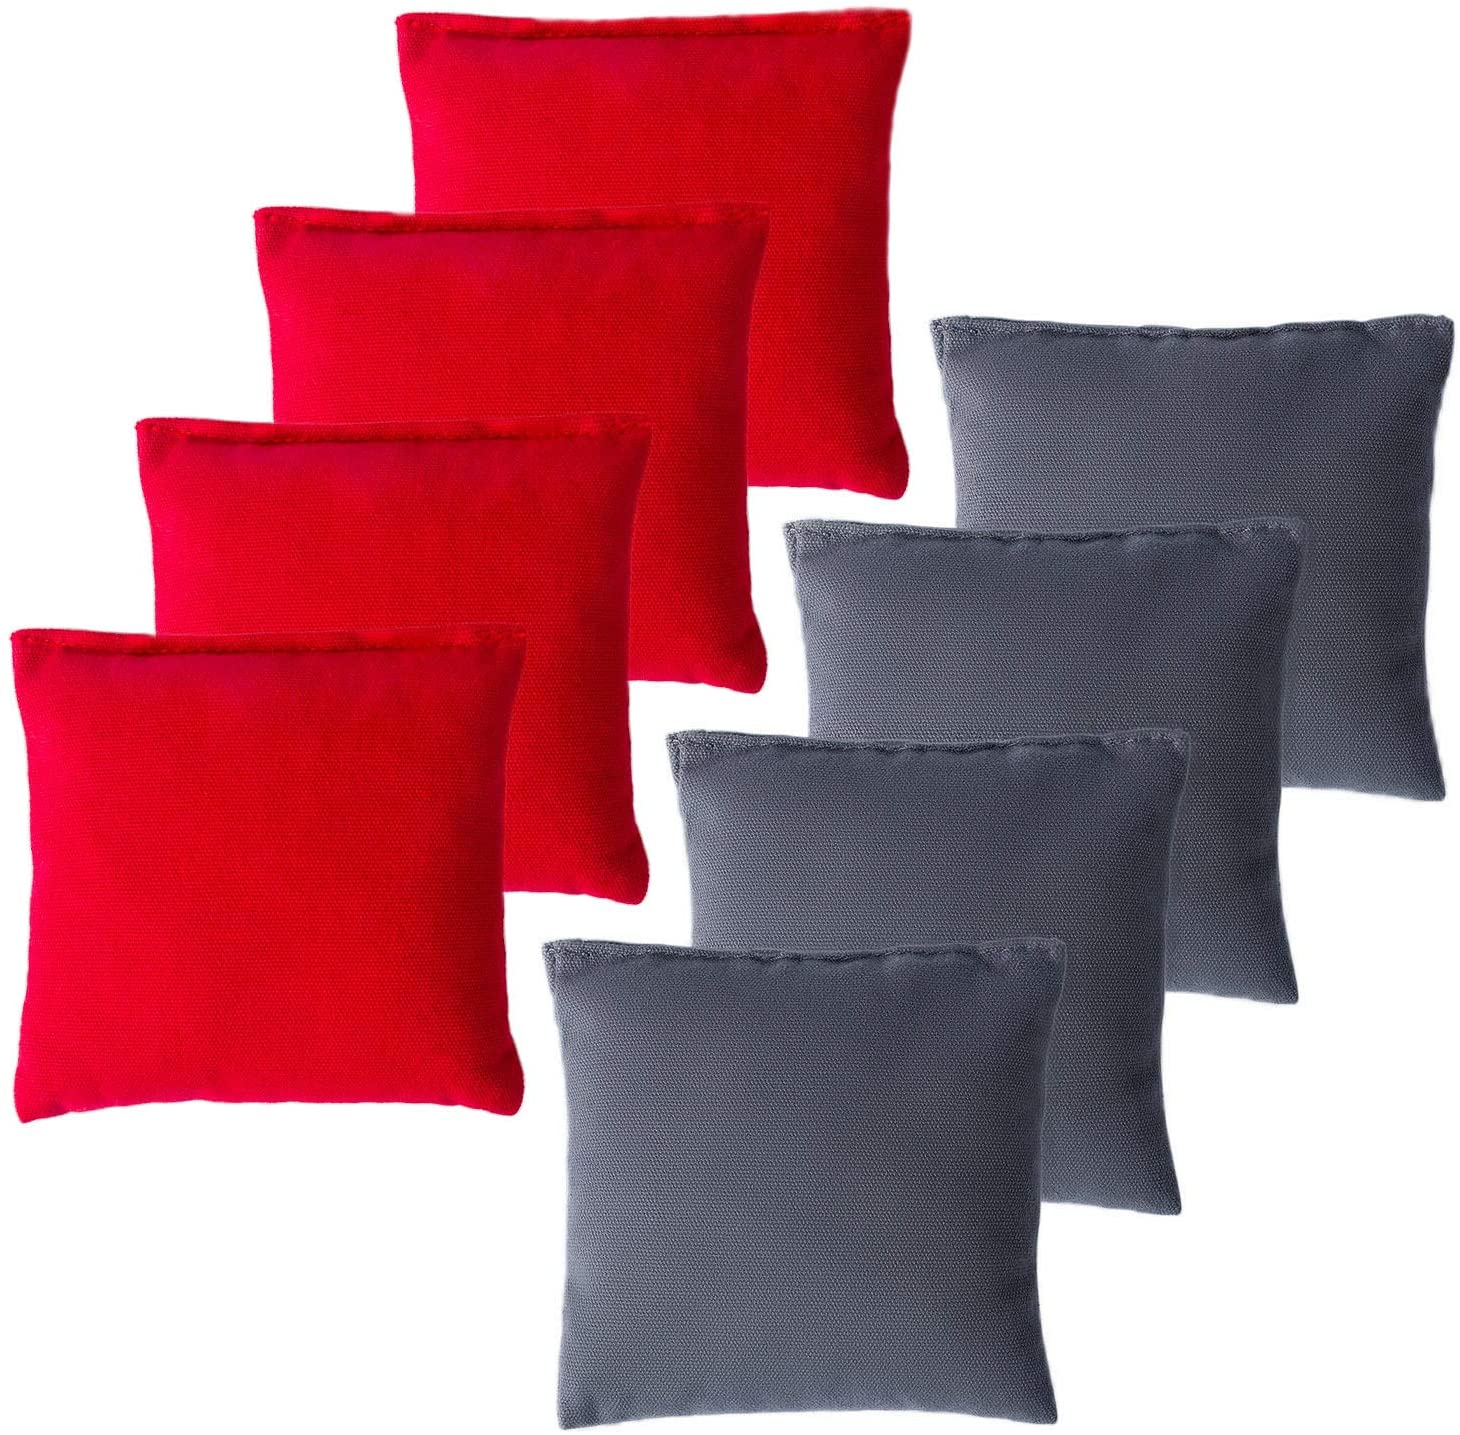 YAADUO Set of 8 Regulation Cornhole Columbus Be super welcome Mall Cloth Stic Duck Bags Double